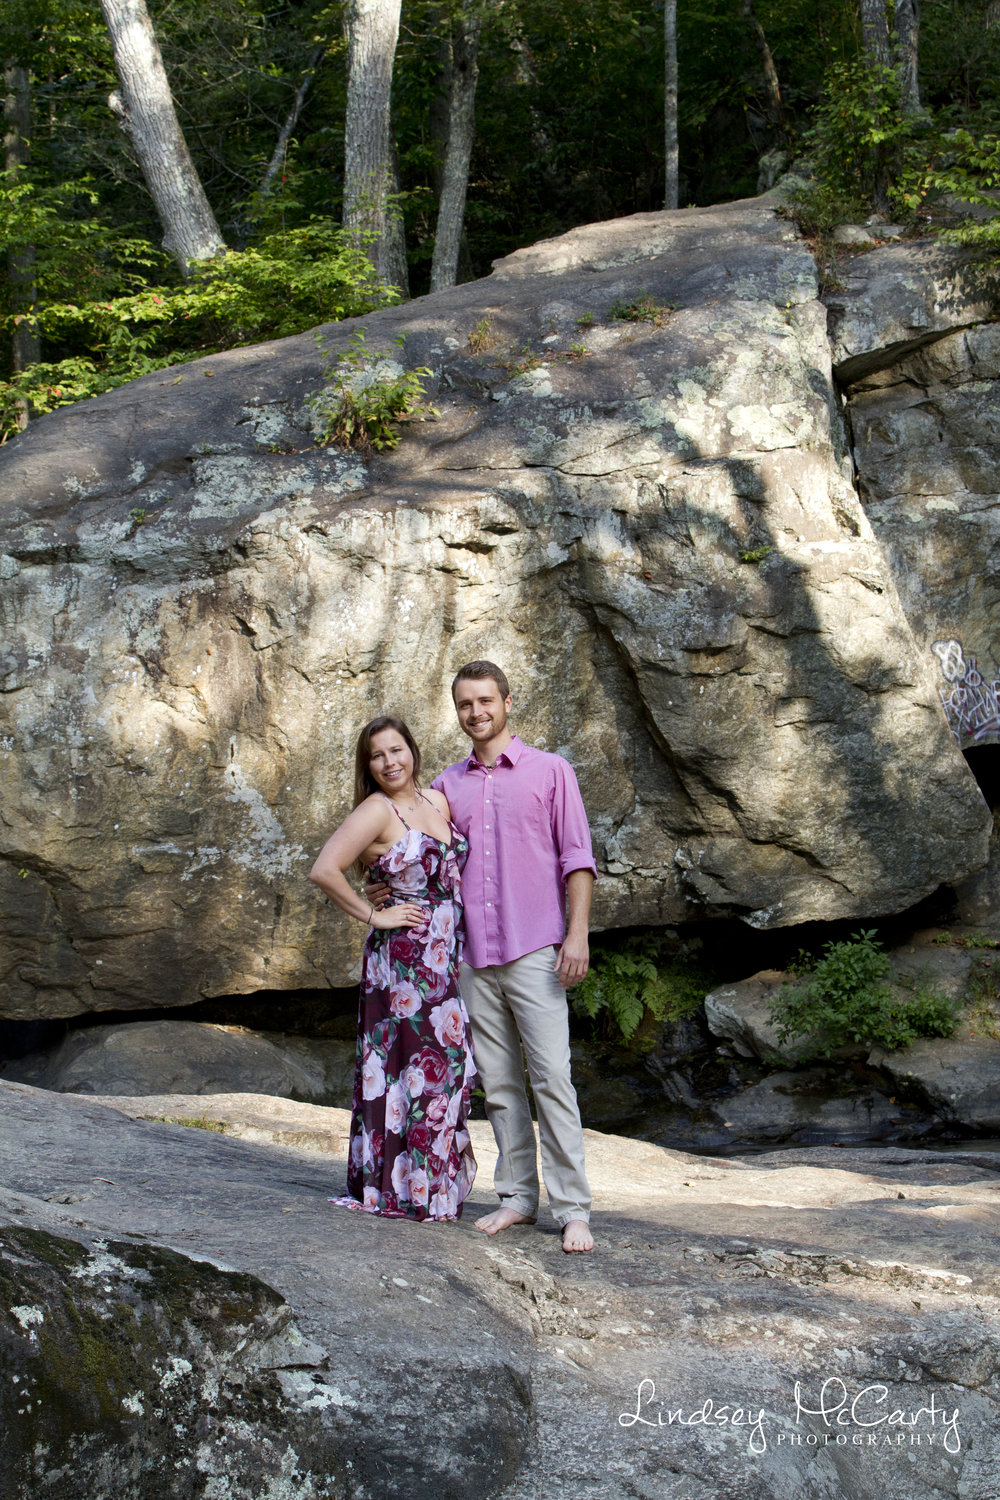 2018_Bowyer-Talley Engagement_Final_psewl_F78A9012_0071.jpg